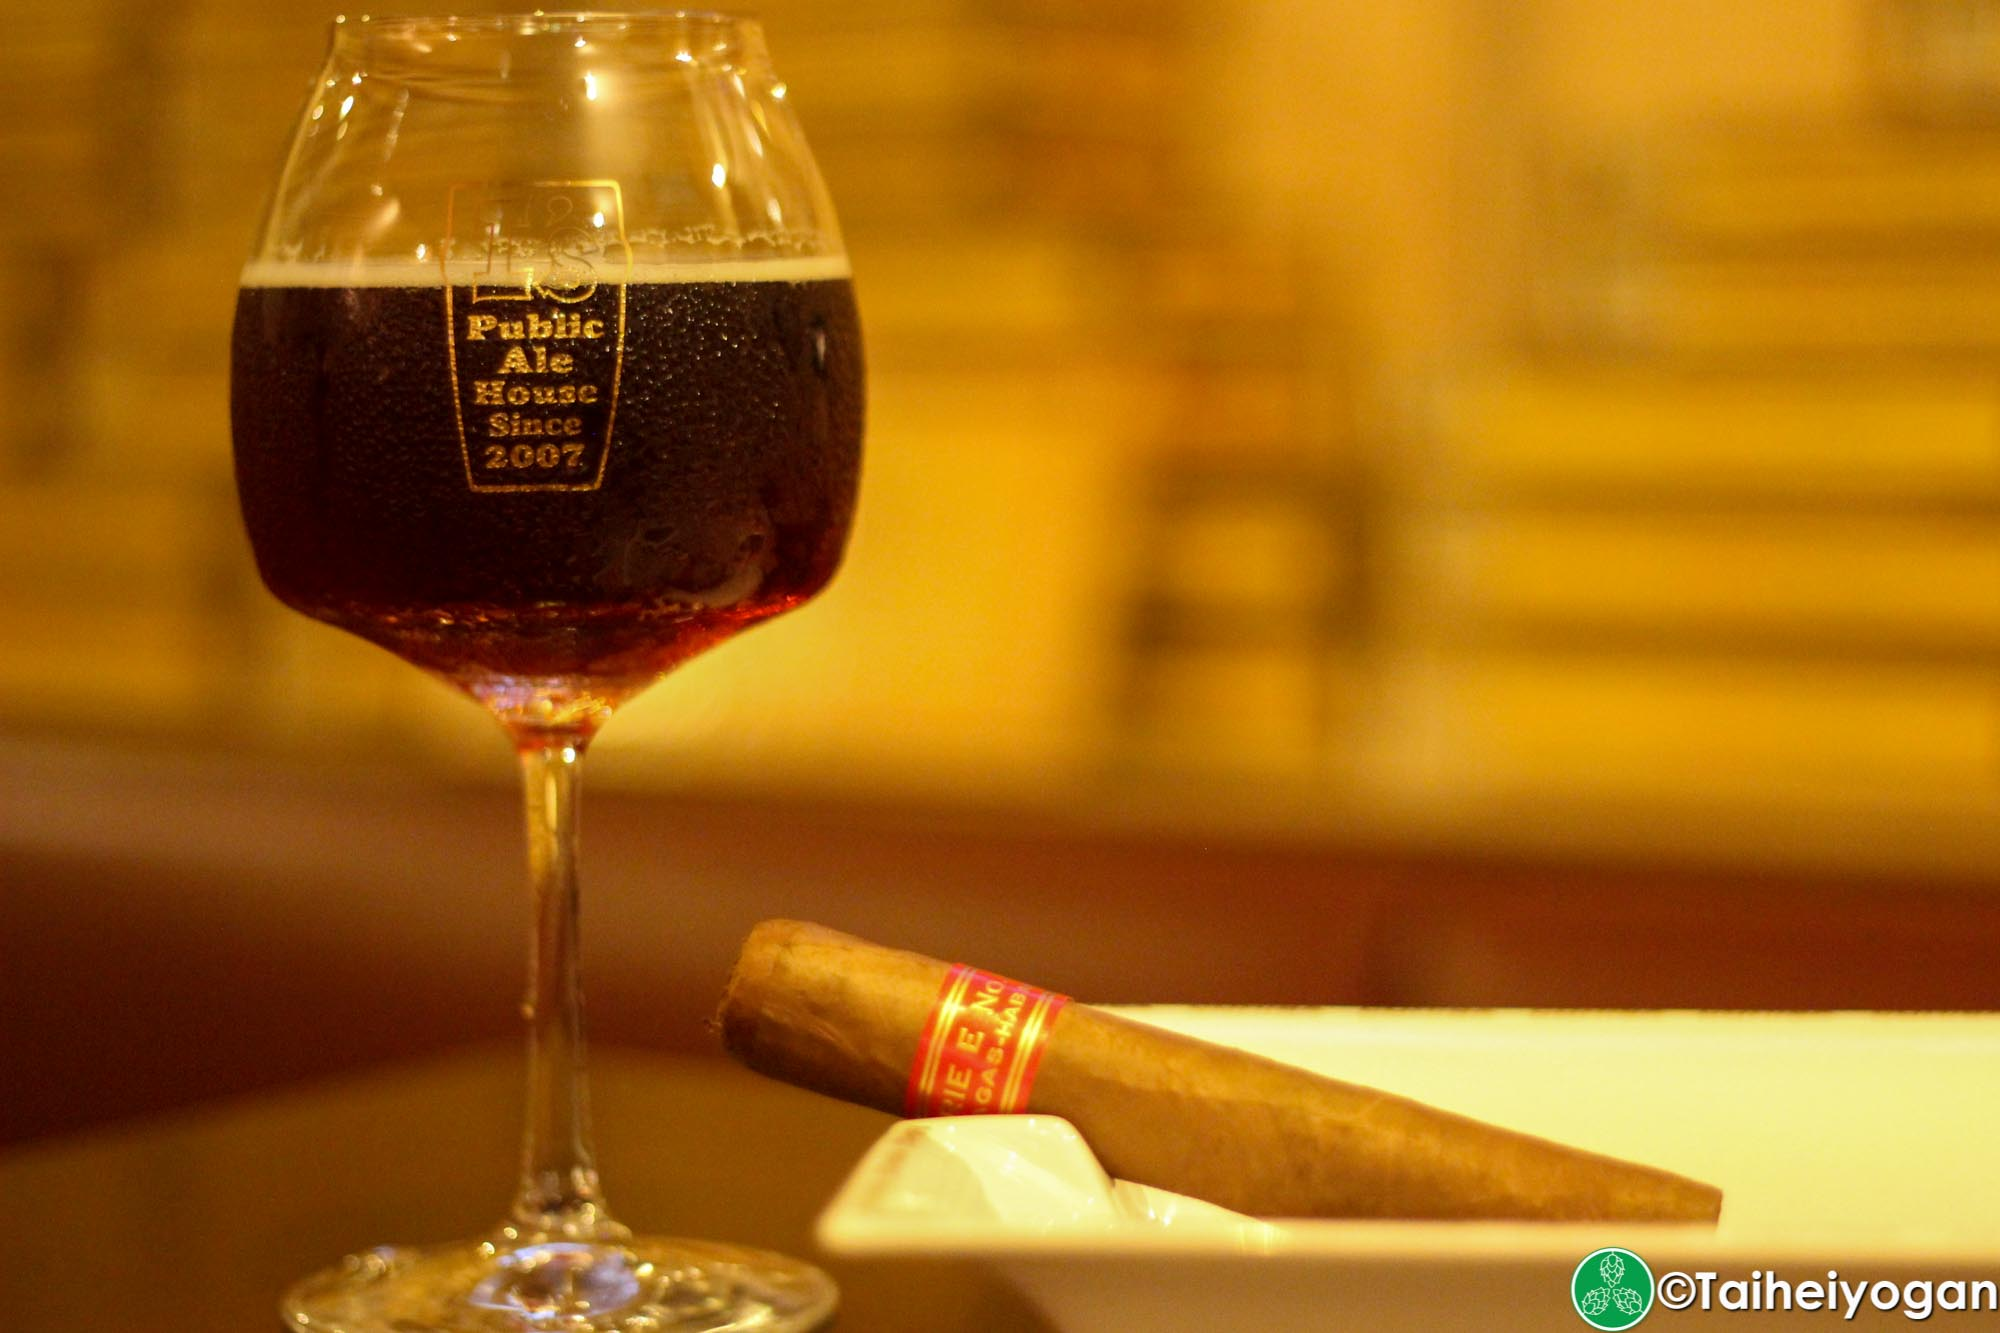 I's Public Ale House - Menu - Barley Wine & Cigar